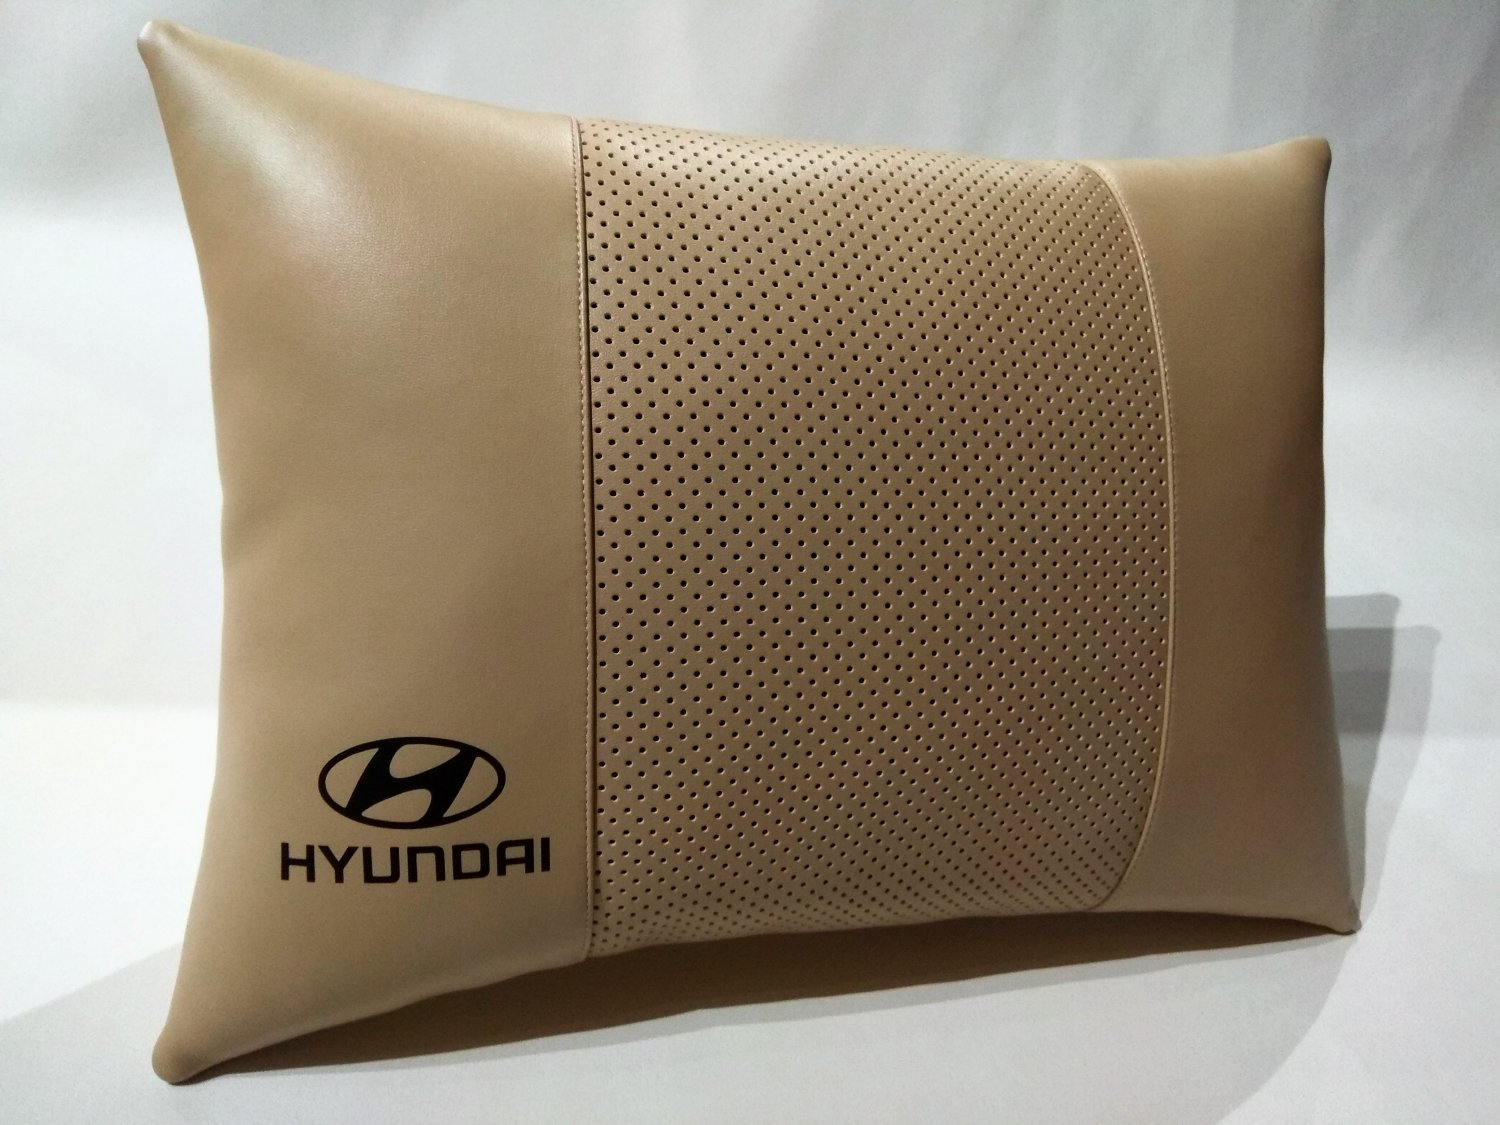 Auto Pillow Comfortable Back Rest with Logo Hyundai Headrest Cushions Pad Support Othopedic Seat